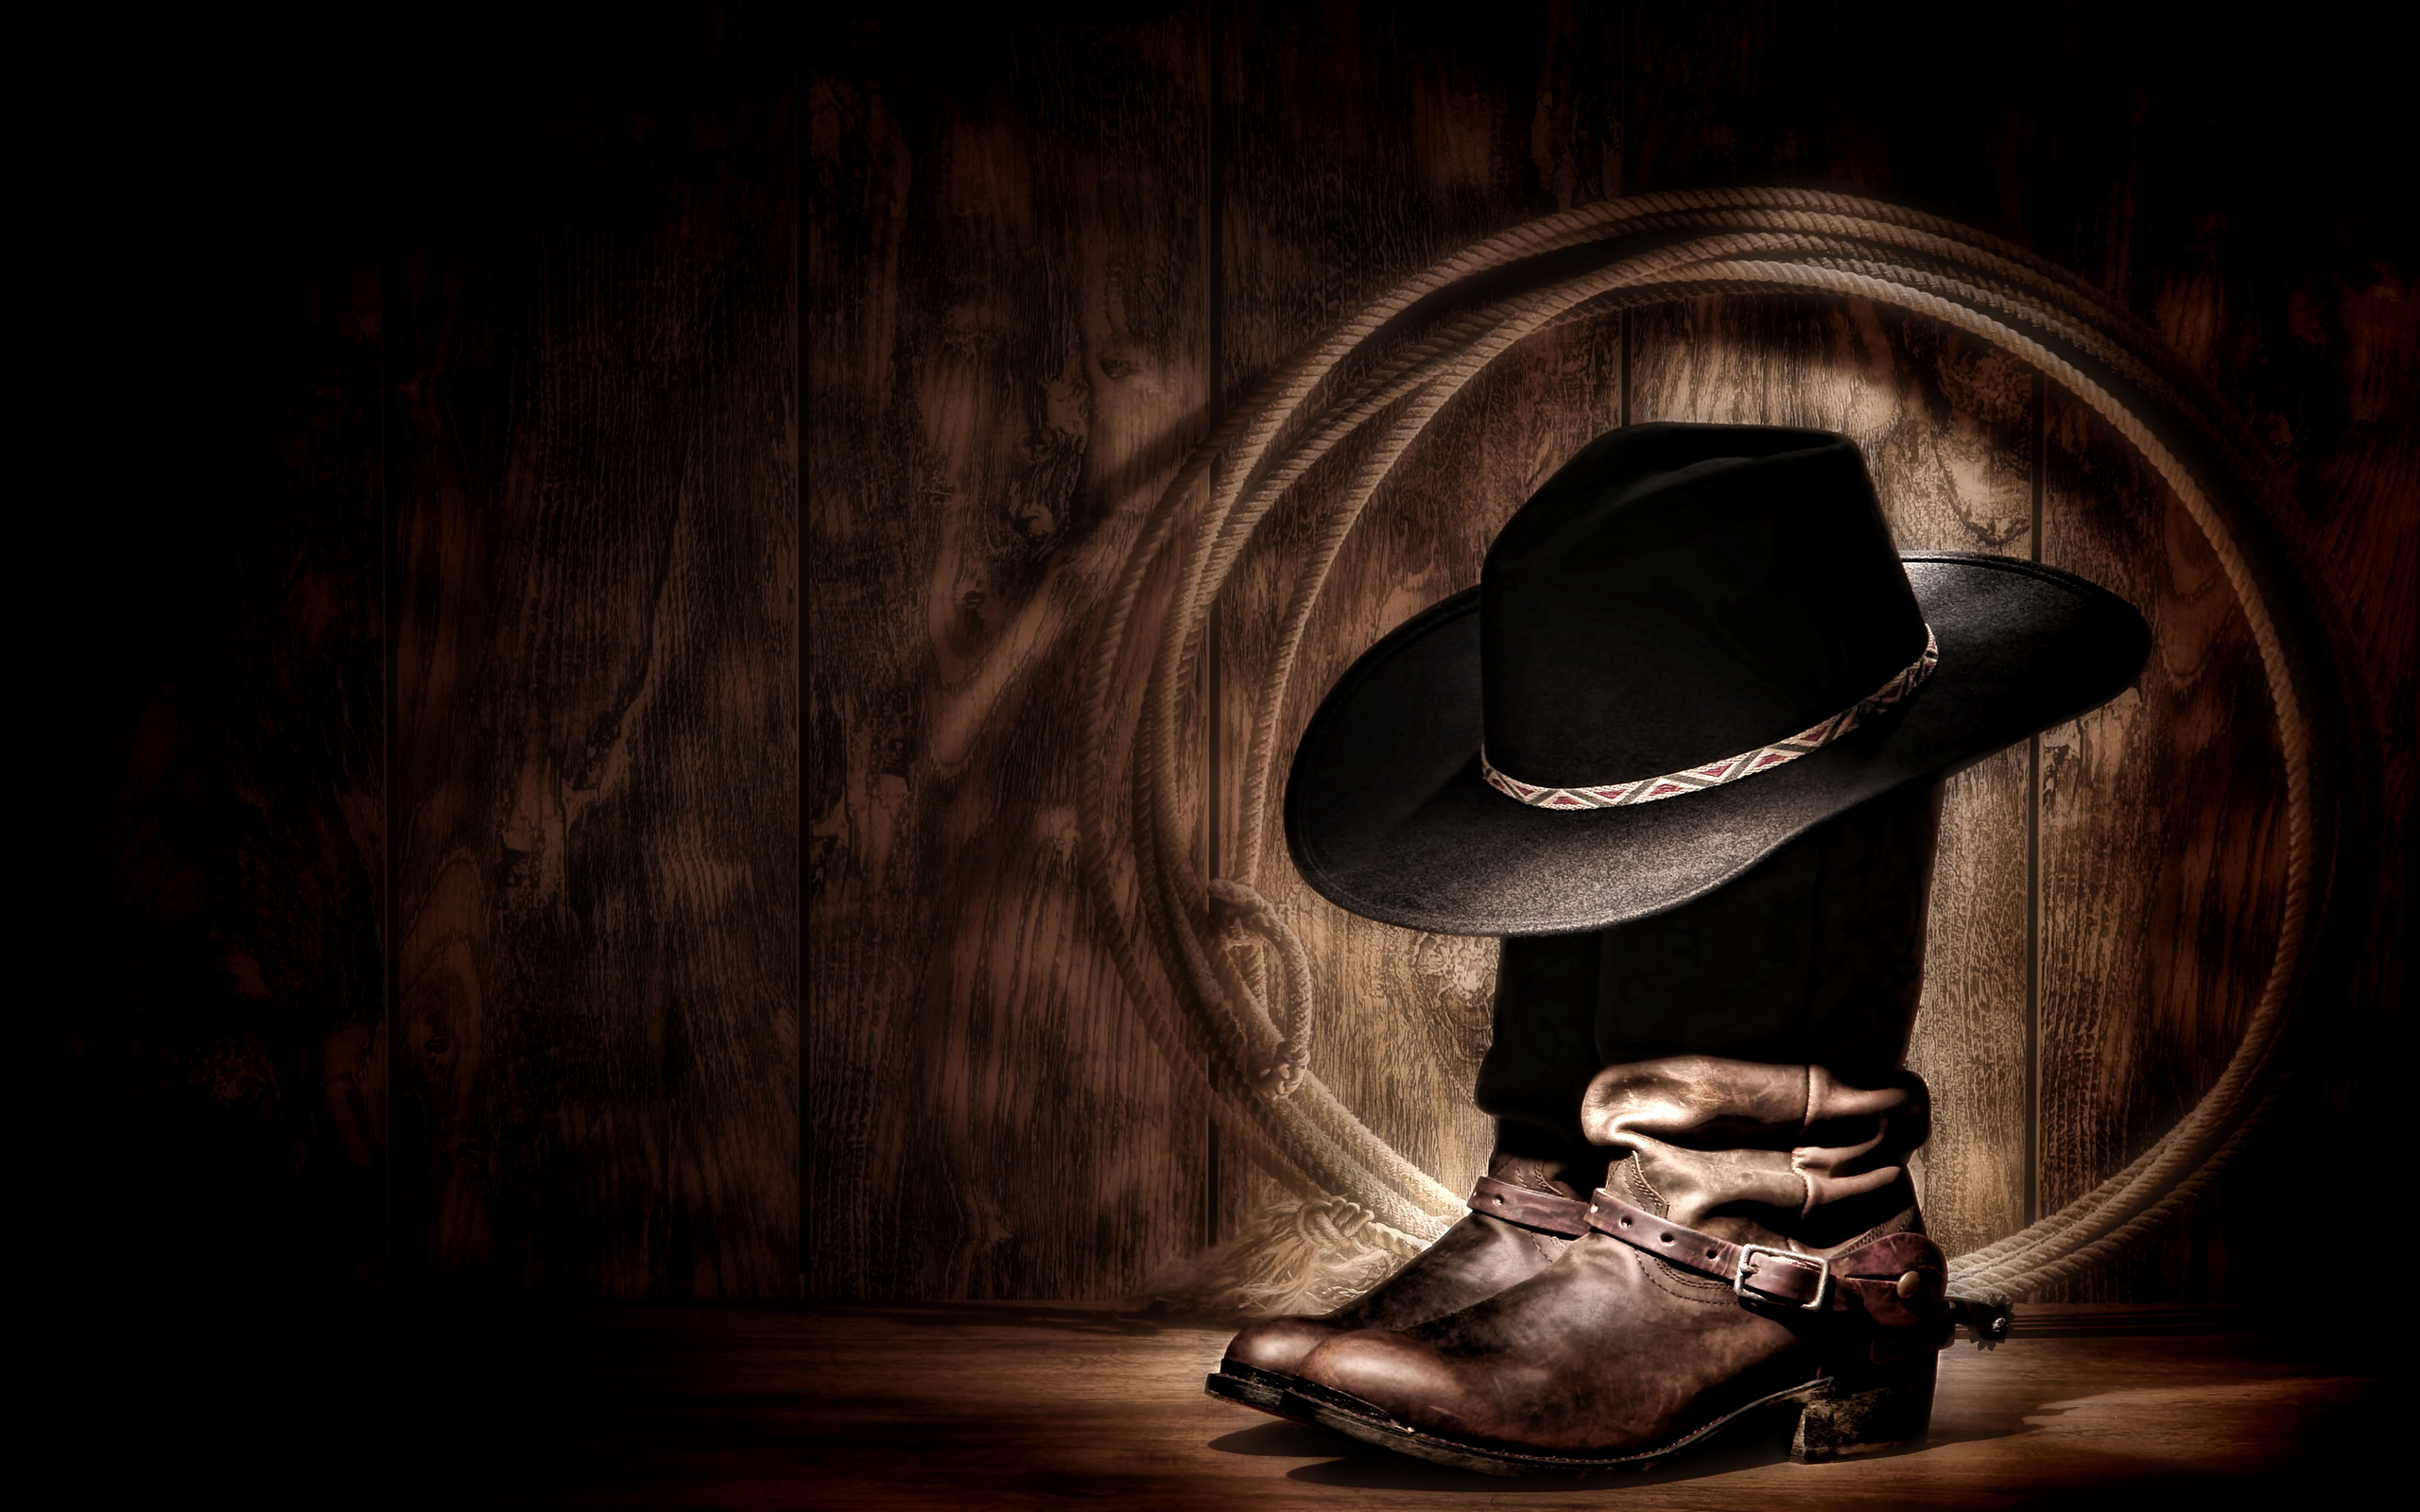 cowboy hd wallpapers backgrounds wallpaper abyss